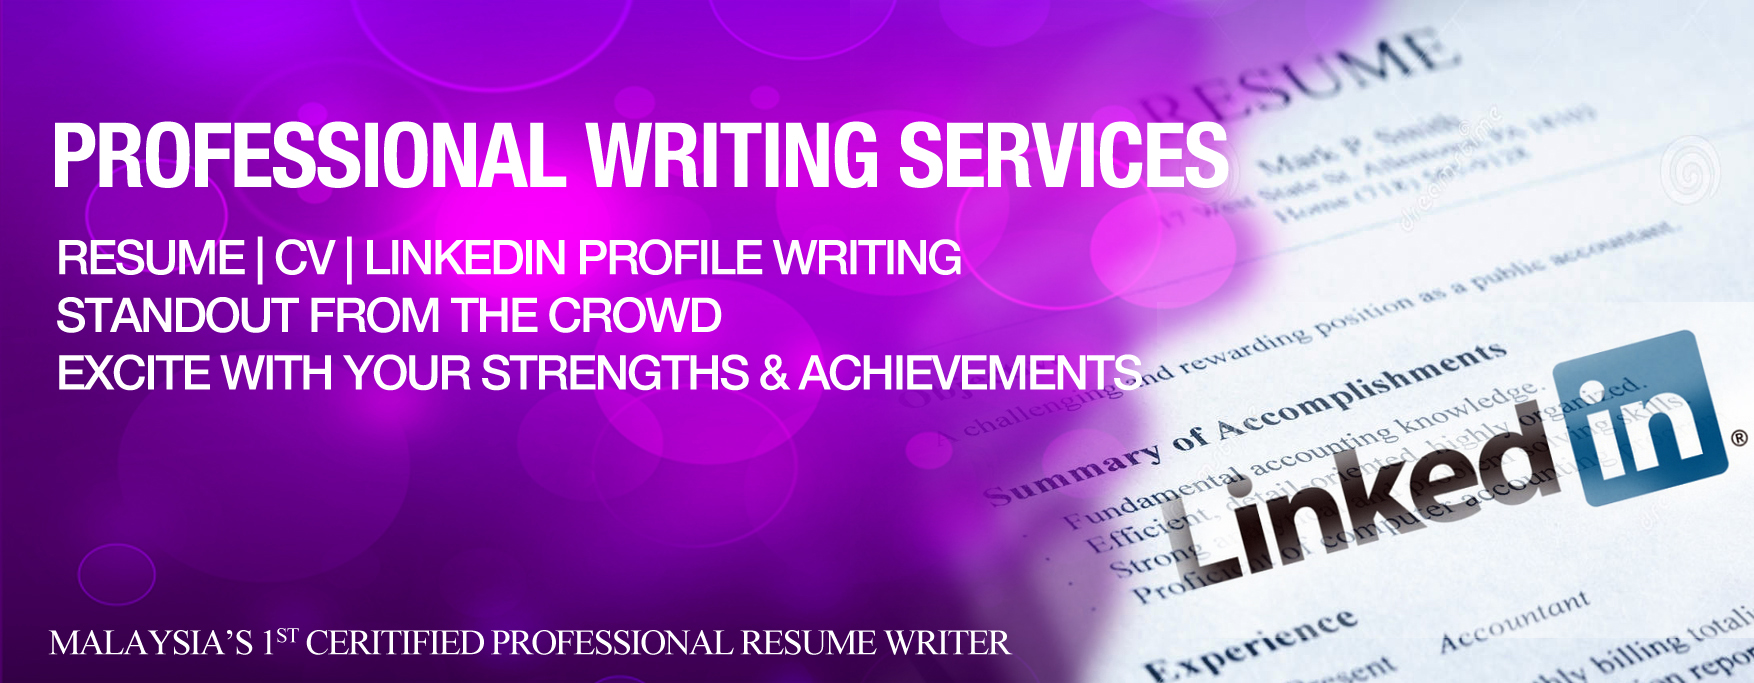 Essay Service Dissertation Writing Services Malaysia Community Service ...